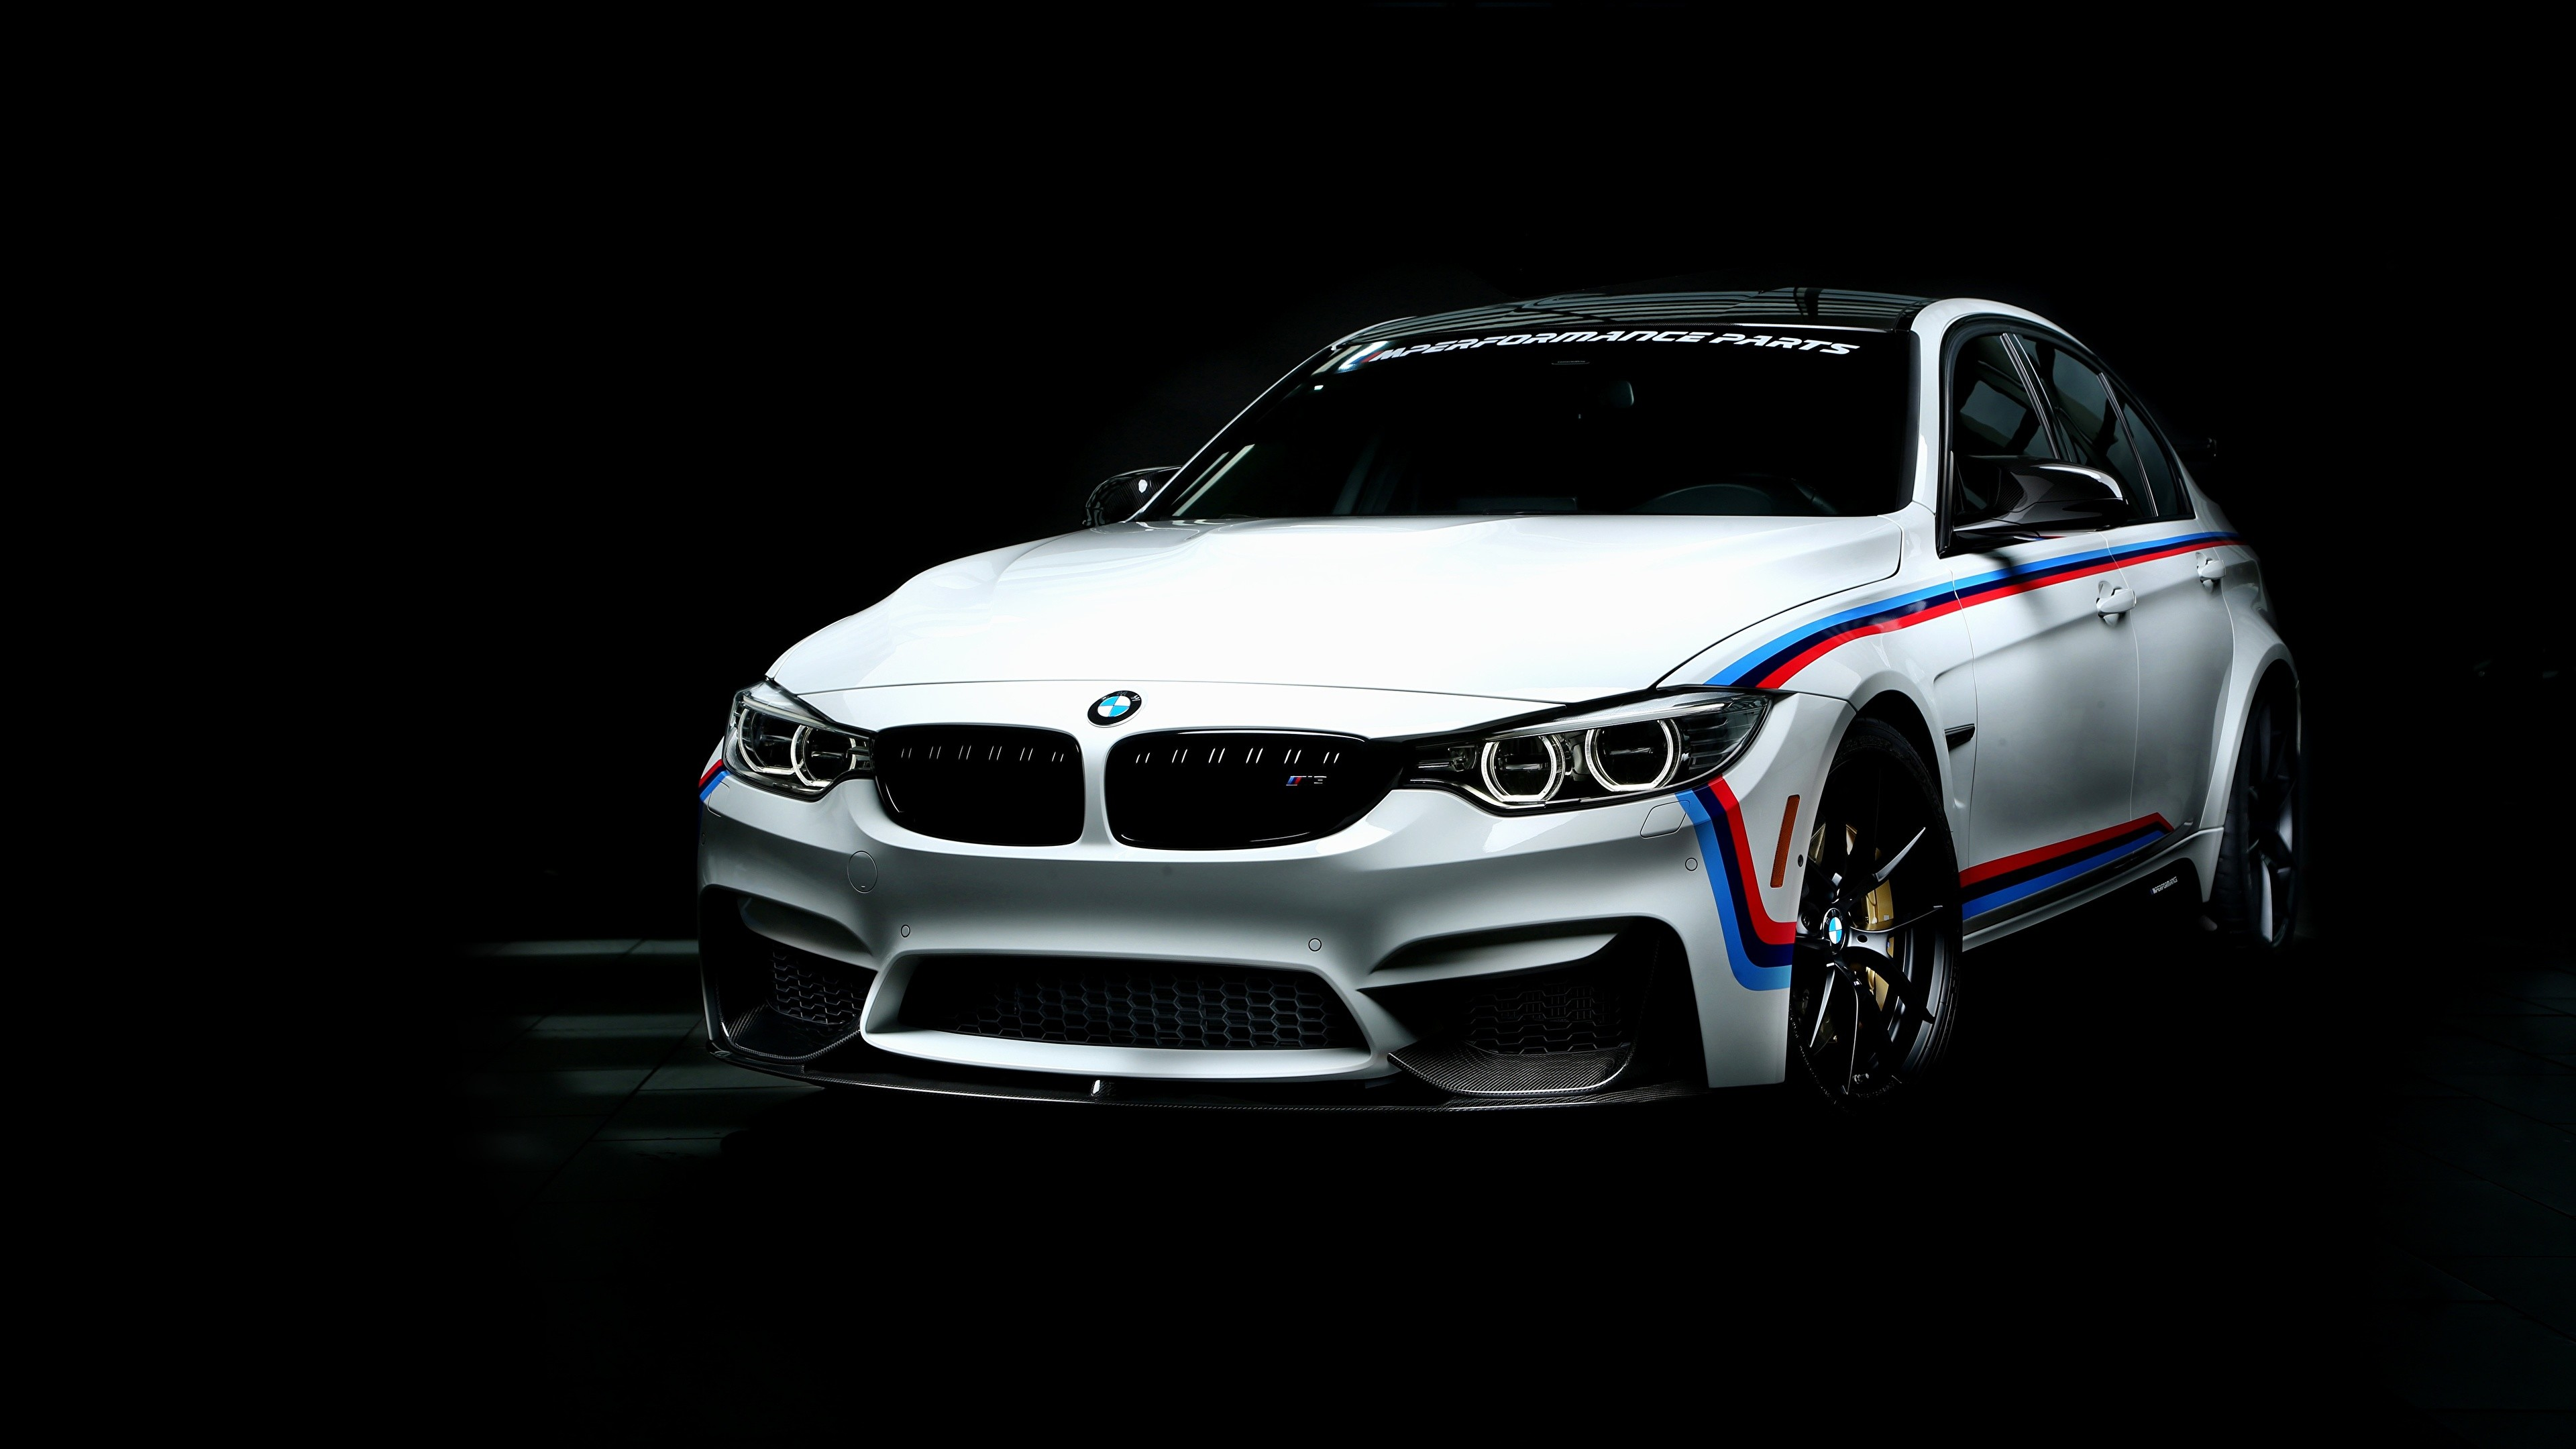 3840x2160 Image BMW 3-Series F80 White auto Black background  Cars automobile